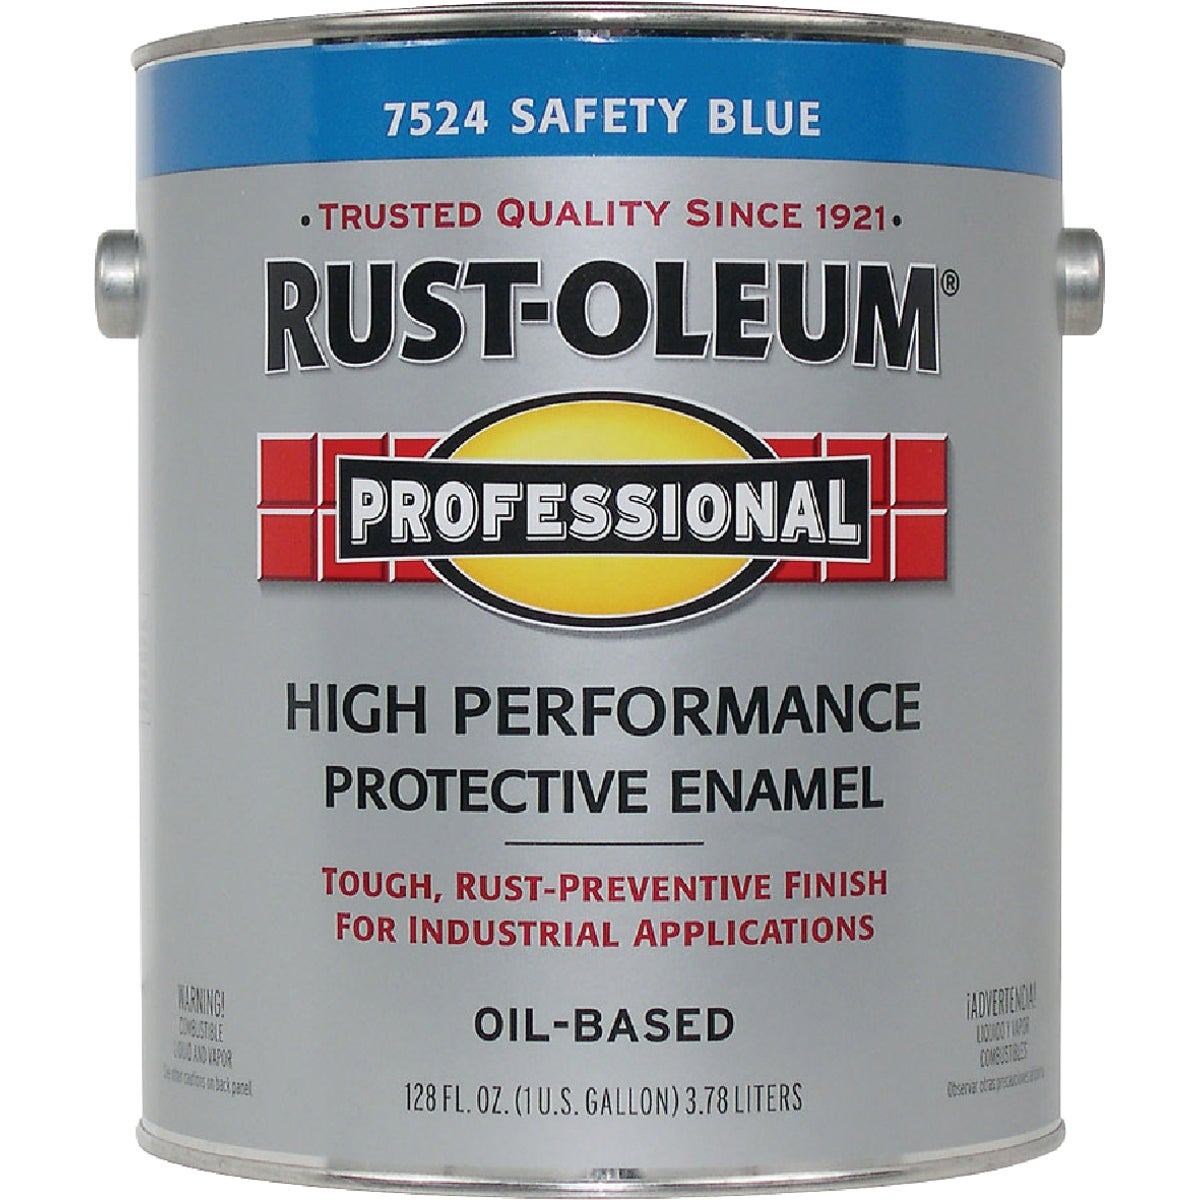 SAFETY BLUE PRO ENAMEL - 7524-402 by Rustoleum